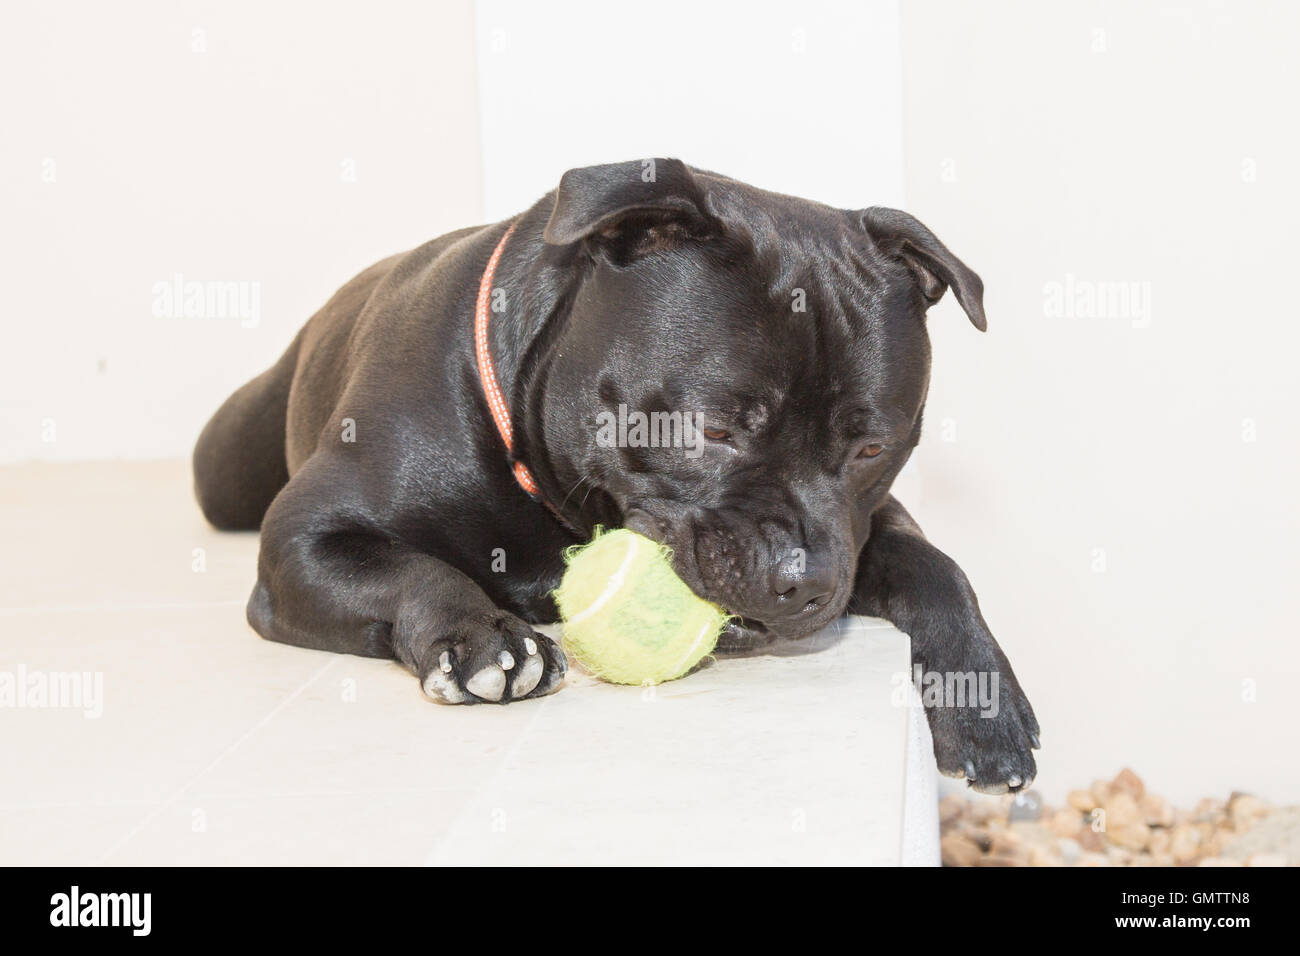 Portrait of a Staffordshire Bull Terrier dog lying down outside on white stone. He has a tennis ball in his mouth. - Stock Image